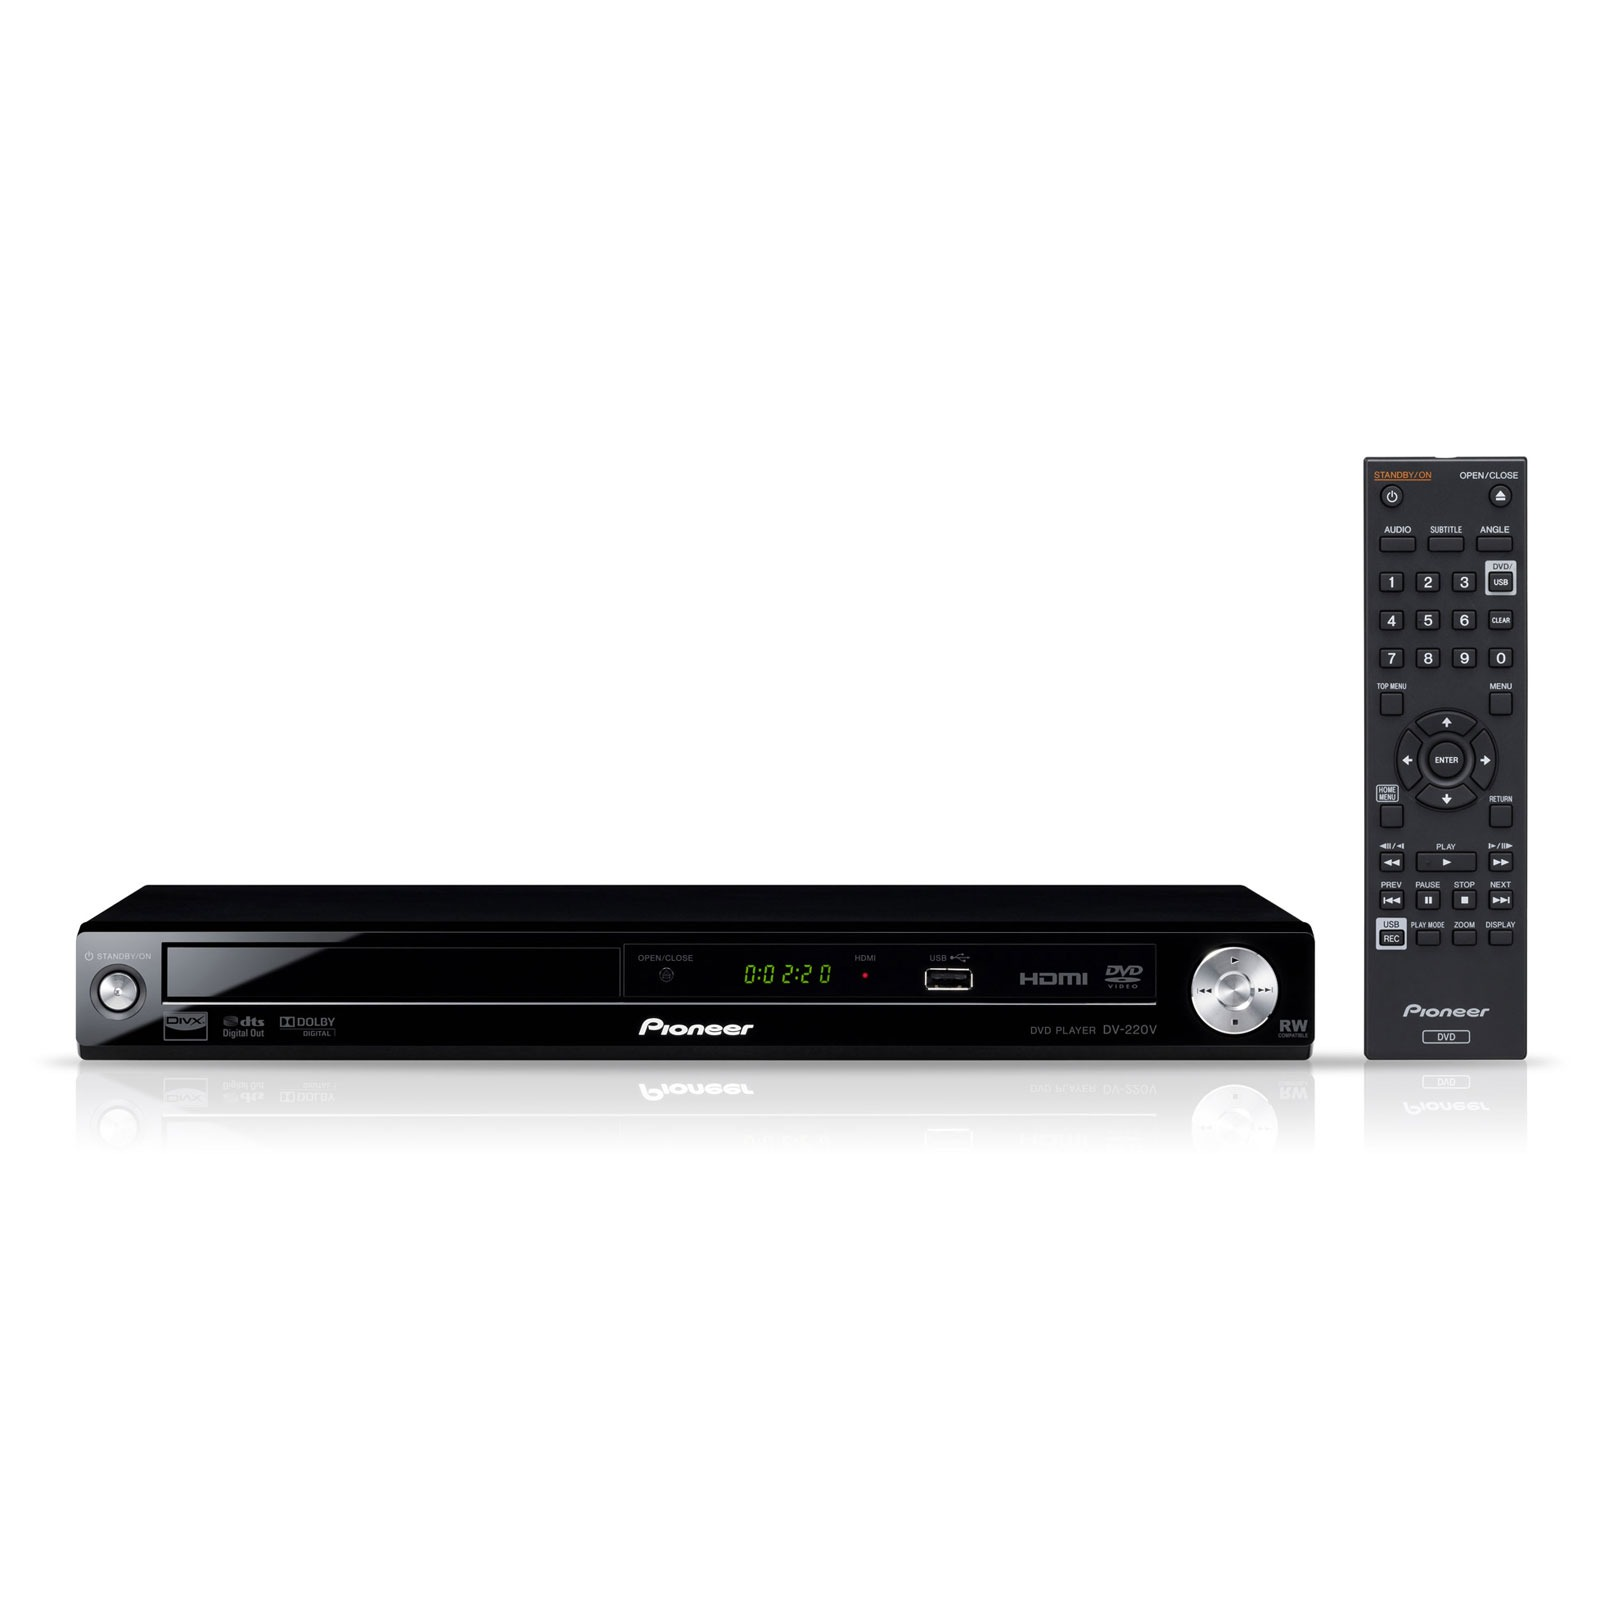 pioneer dv 220 lecteur dvd pioneer sur ldlc. Black Bedroom Furniture Sets. Home Design Ideas